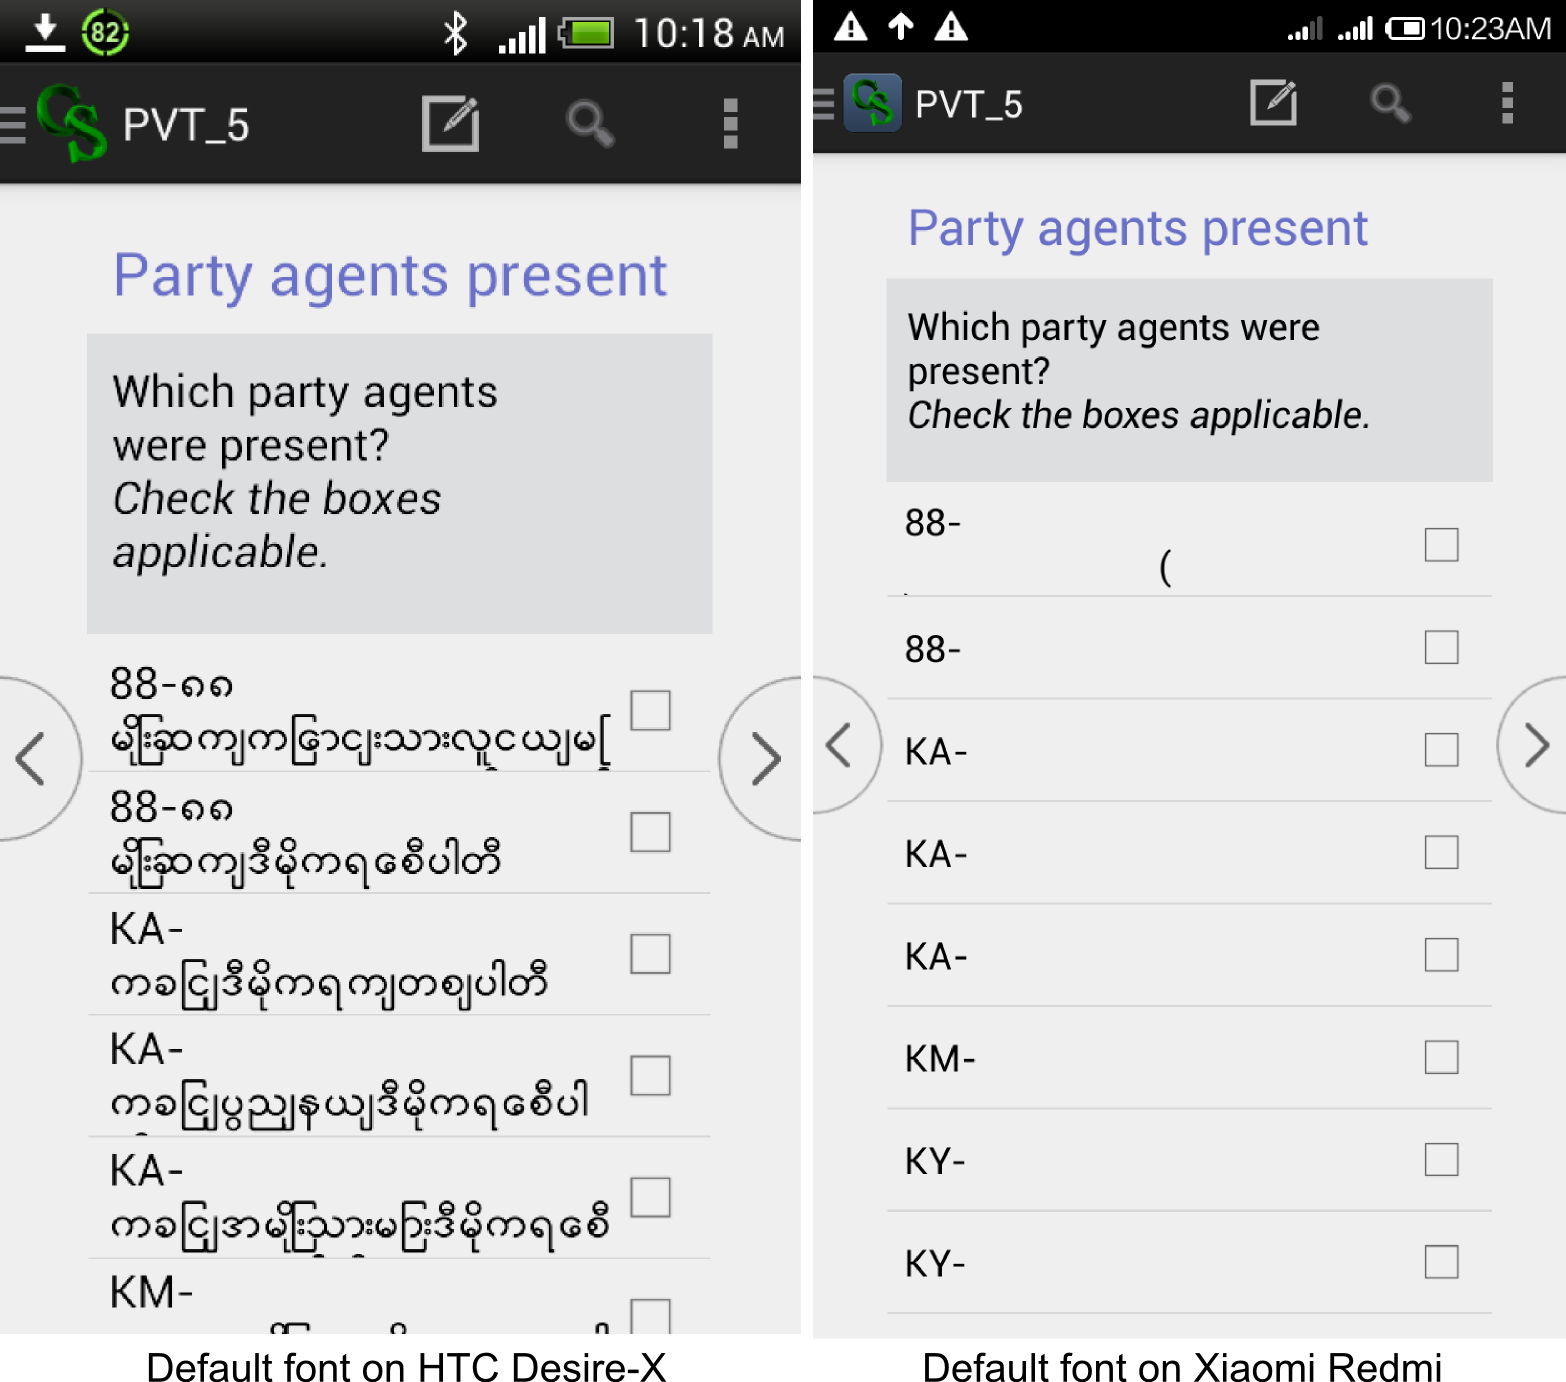 for htc desire x it came with its own default myanmar font comparing it with the last screen shot of previous picture i saw an exact match